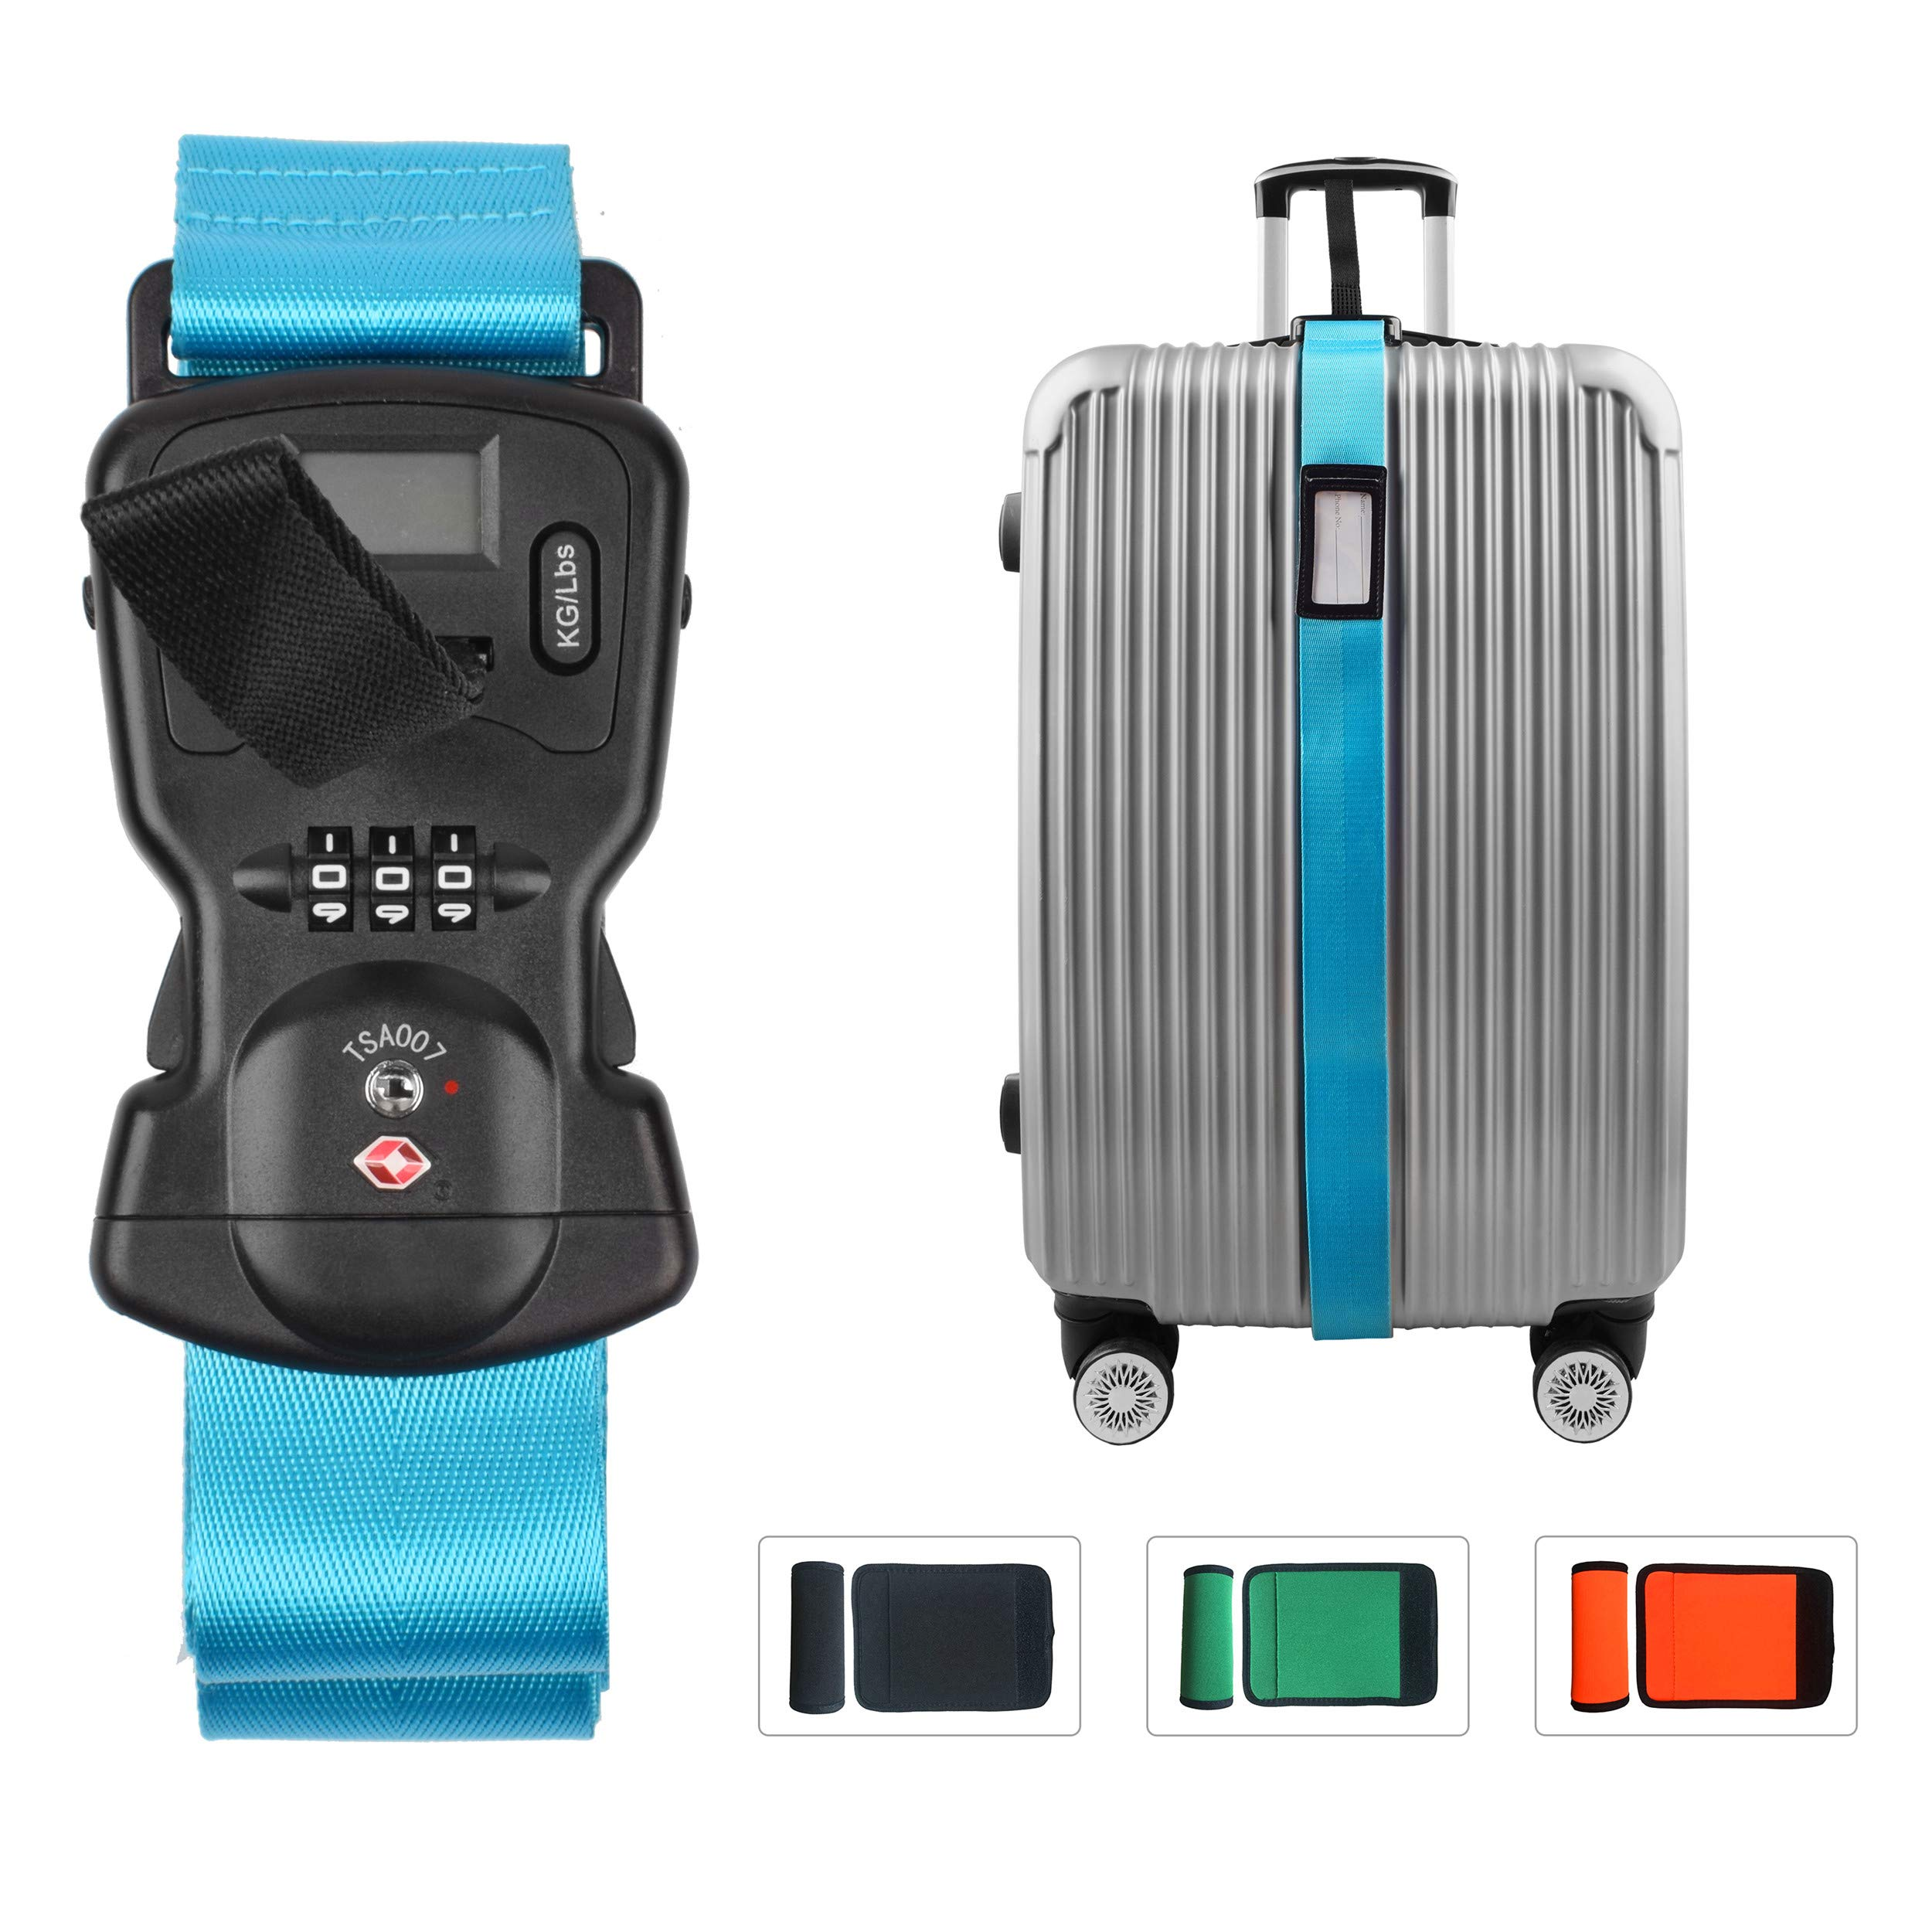 Smaior TSA approved luggage straps suitcase belts, baggage straps Electronic Scale Password Lock-Available in 3 colors